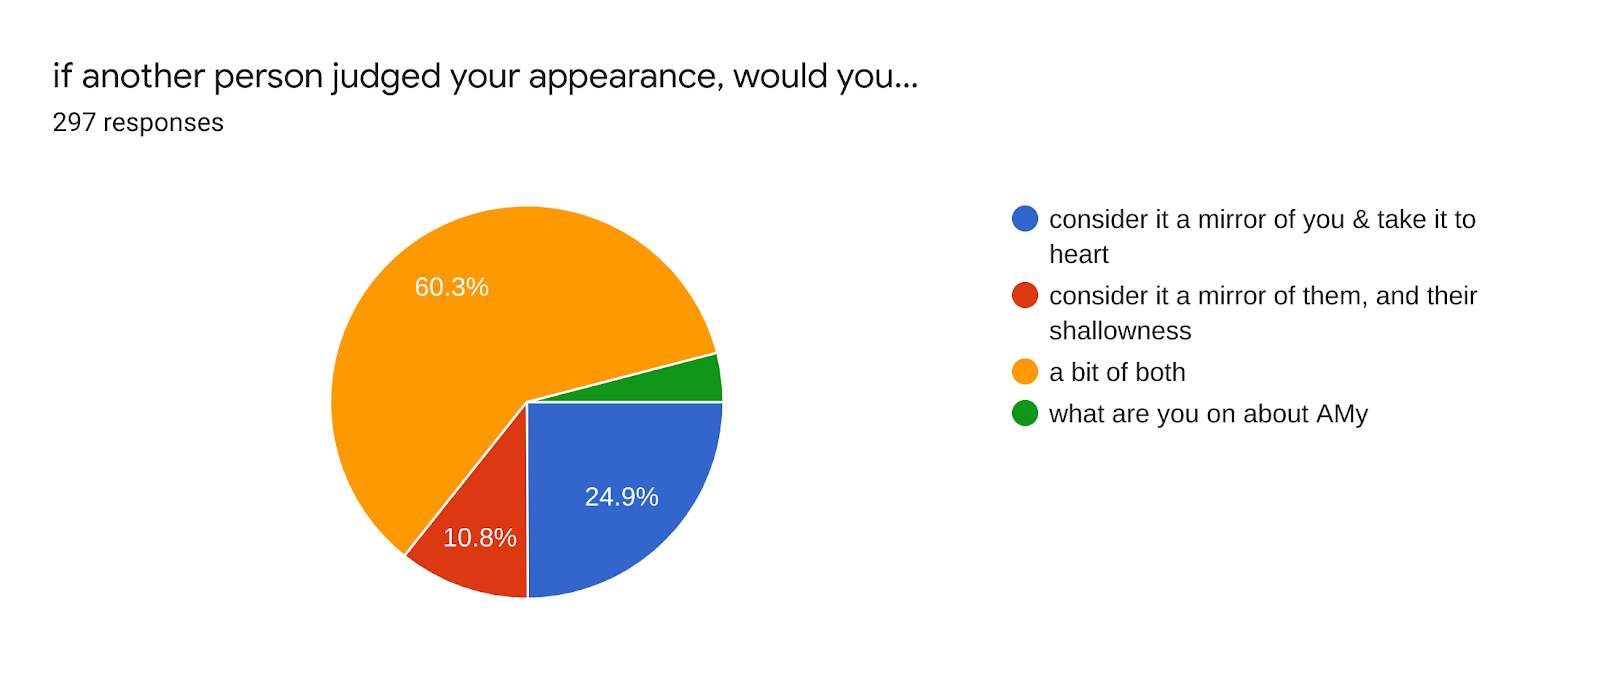 Forms response chart. Question title: if another person judged your appearance, would you.... Number of responses: 297 responses.